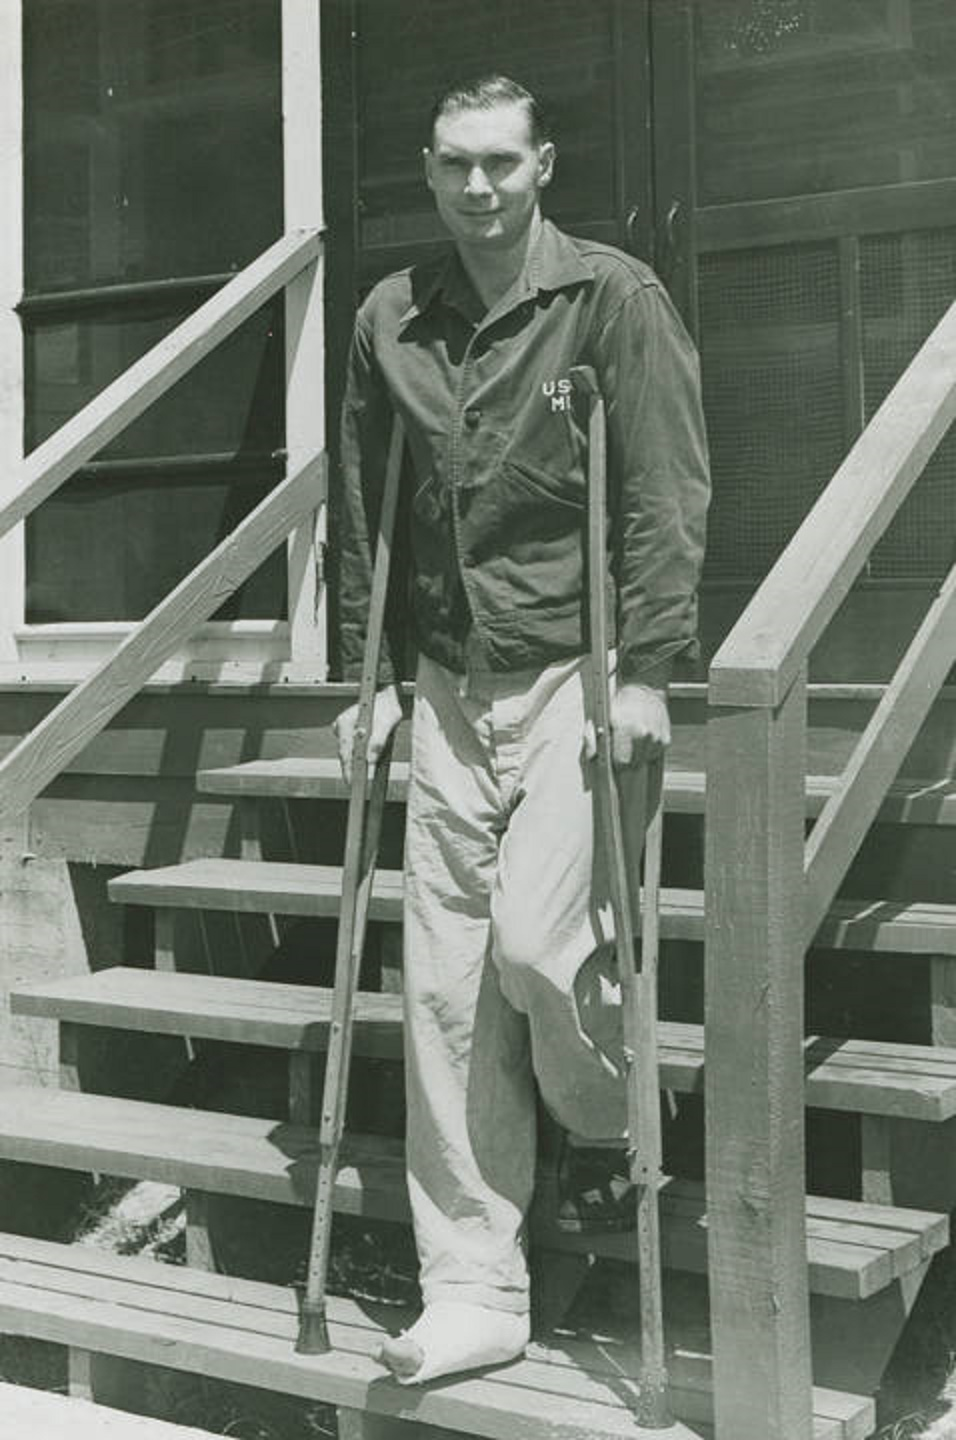 O To Ww Bing Comsquare Root 123: Photographs Of Wounded World War II Veterans In 1945 At